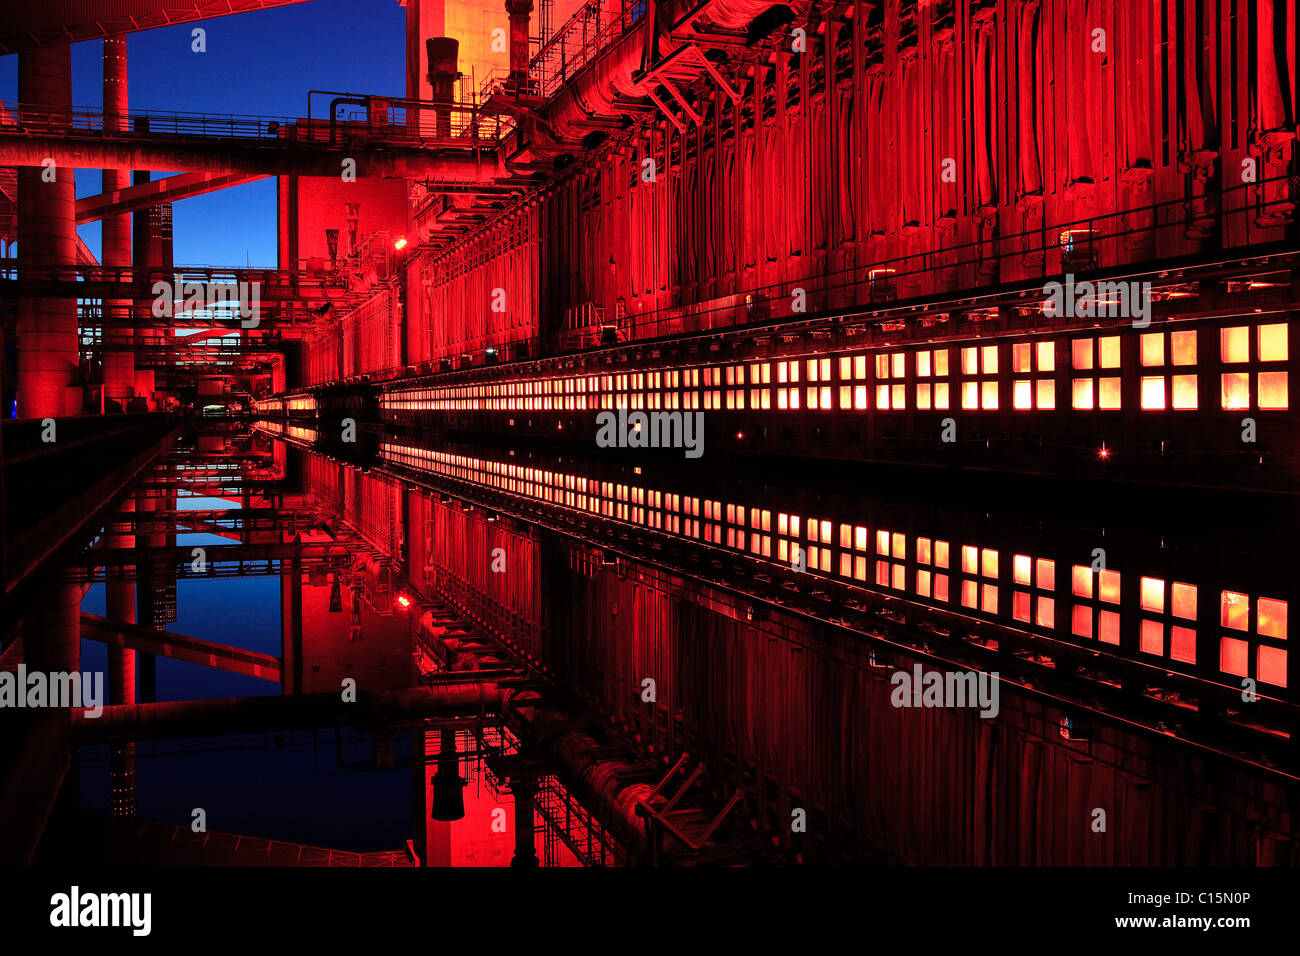 Zeche Zollverein, Essen, North Rhine-Westphalia, Germany, Europe - Stock Image